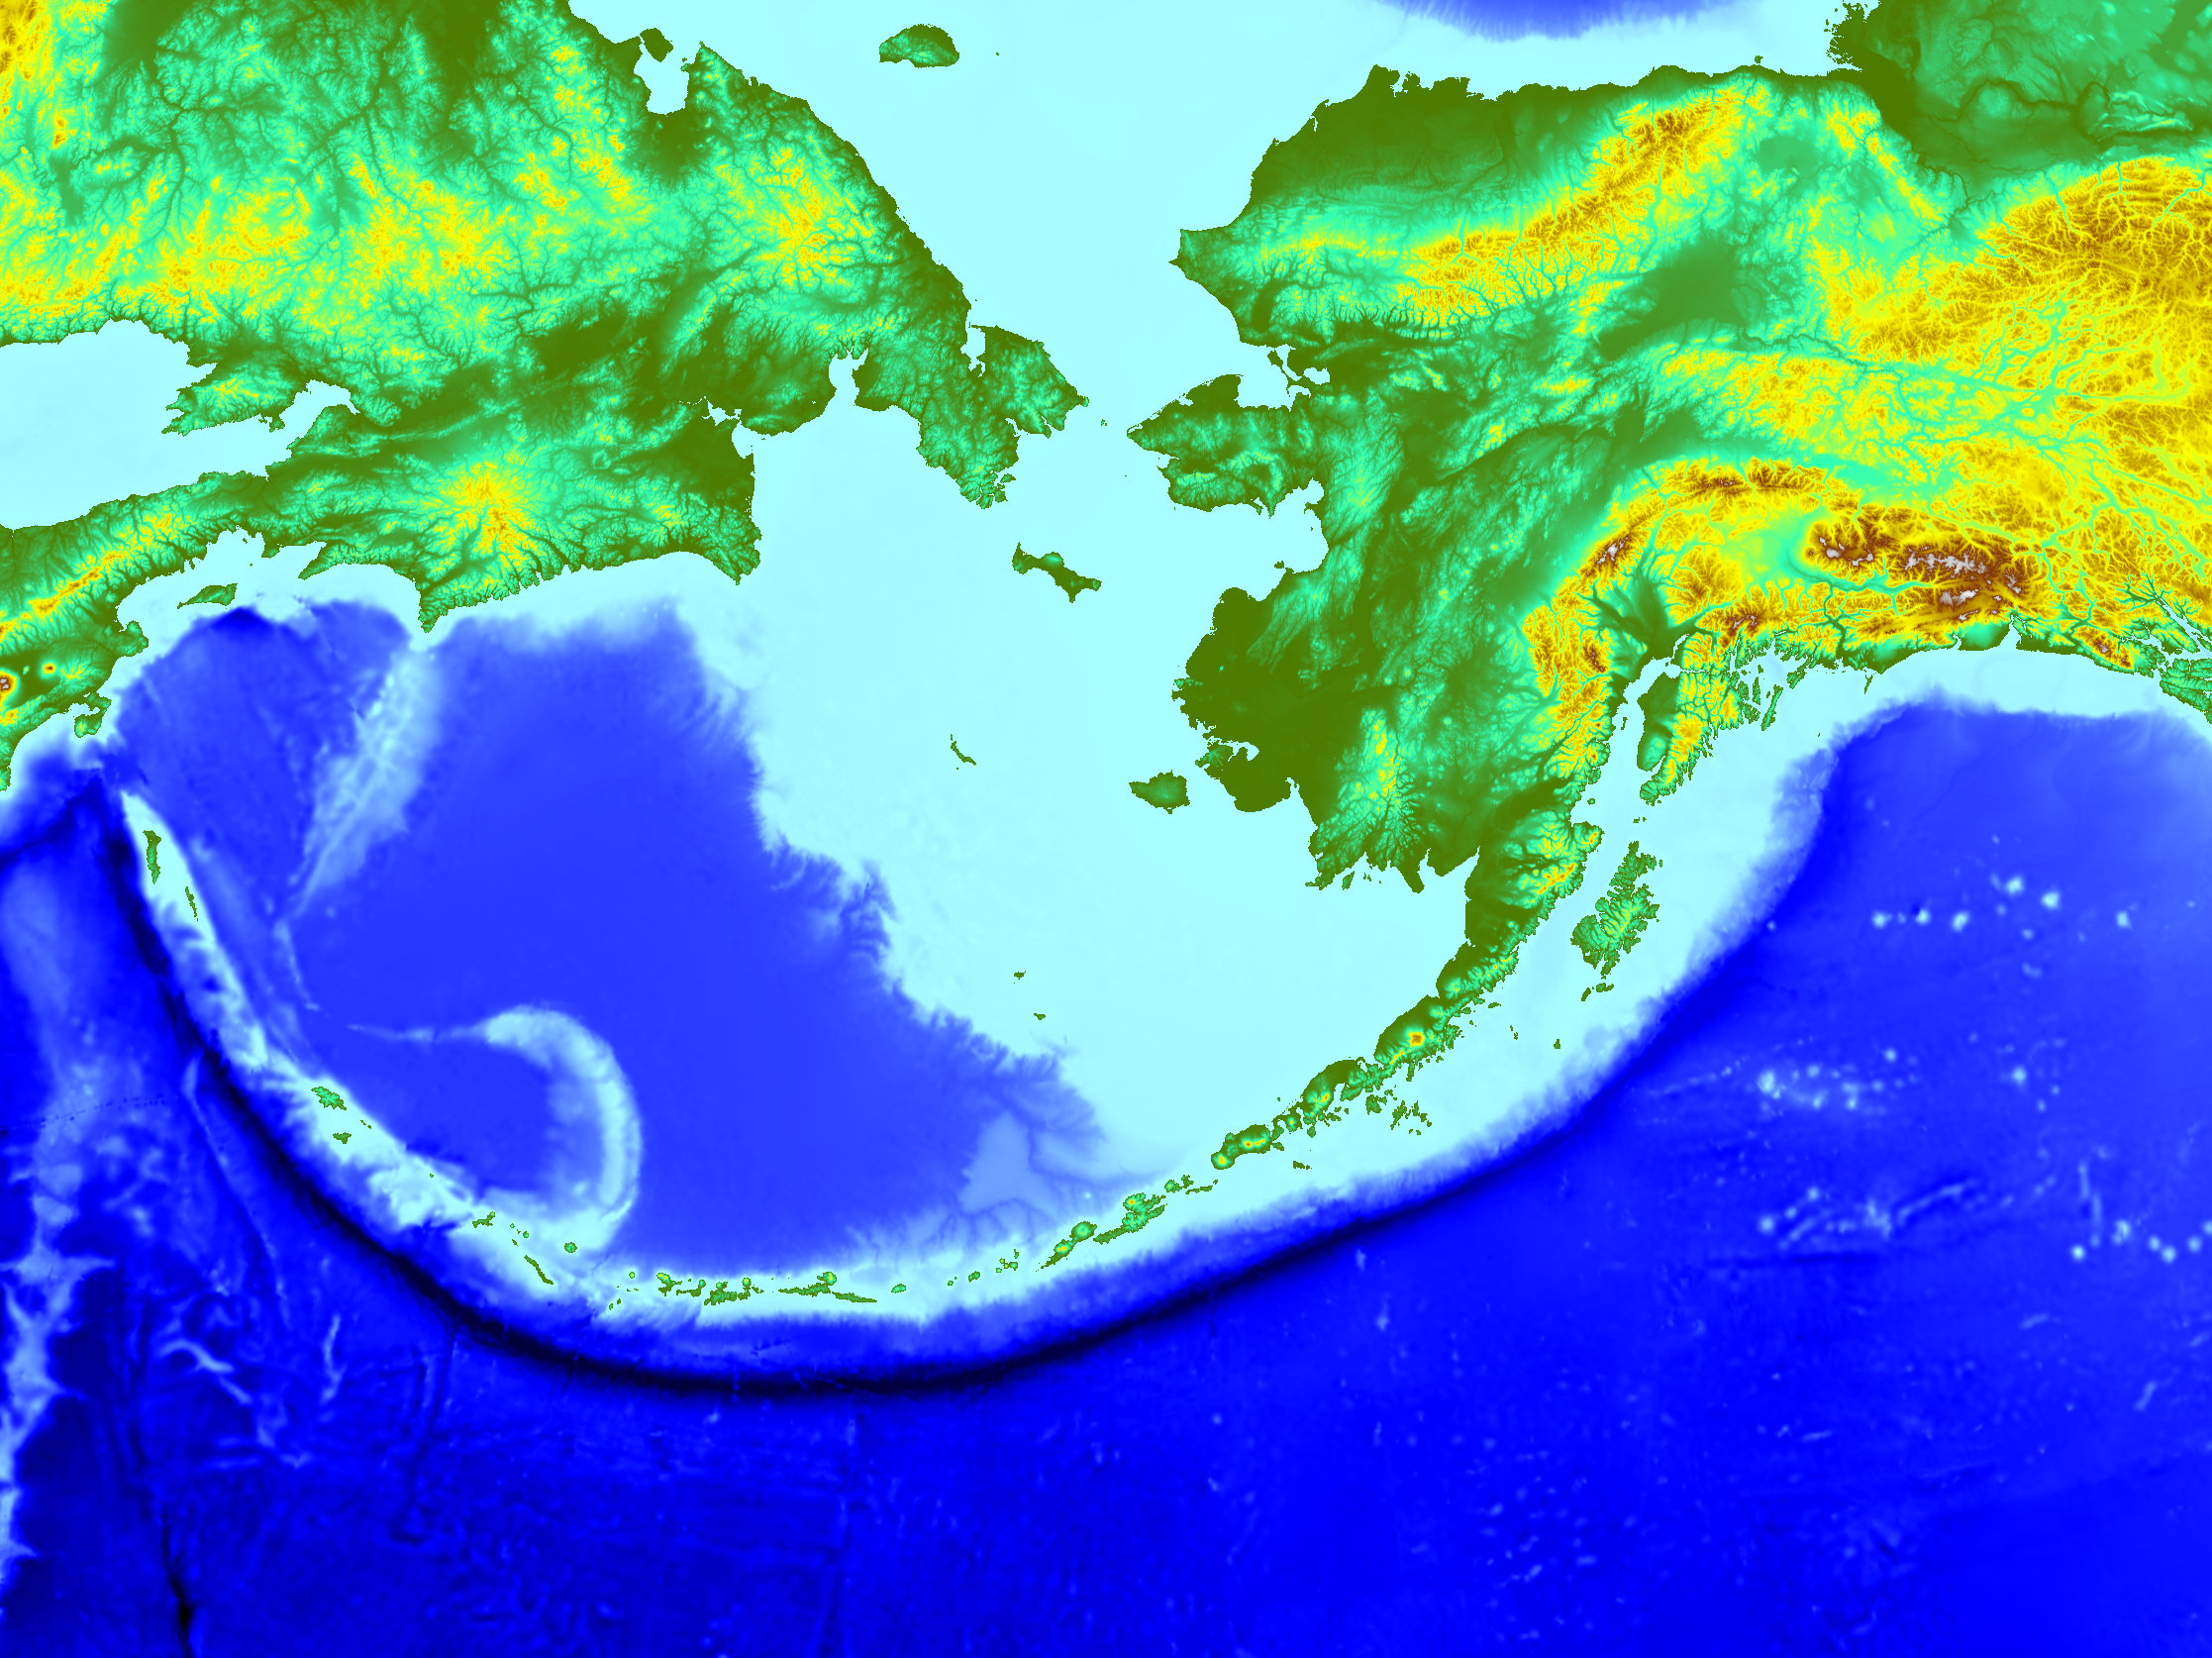 Map of the Aleutian Trench and Islands. Retrieved from Wikipedia Page on Aleutian Trench.